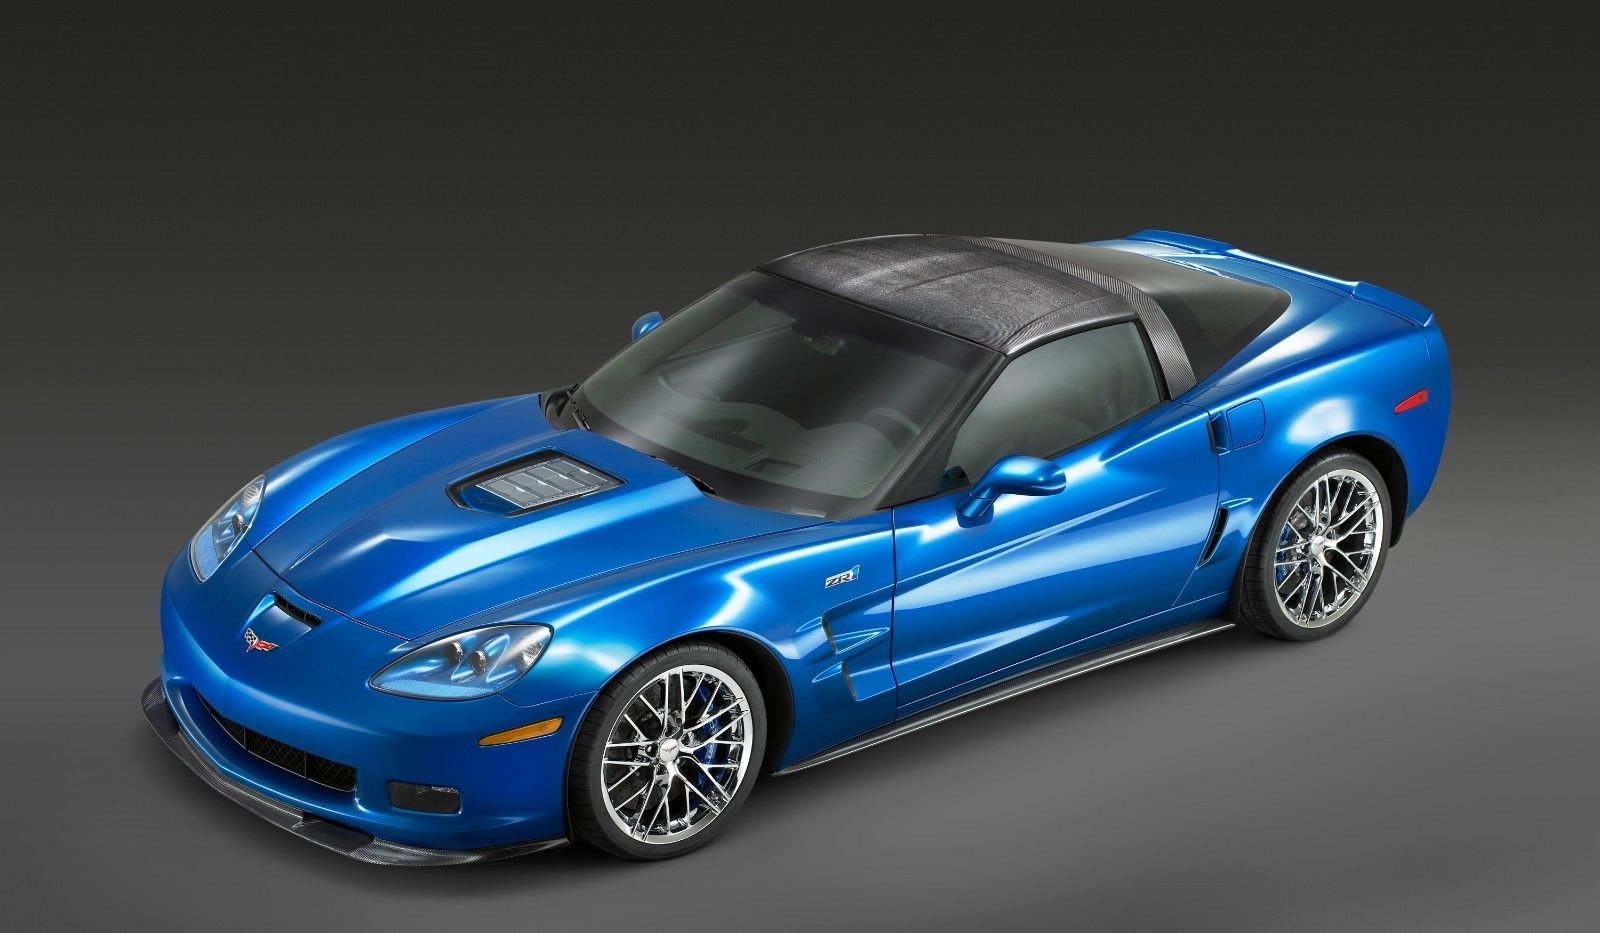 Primary image for 2015 Corvette zr1 blue 24X36 inch poster, sports car, muscle car